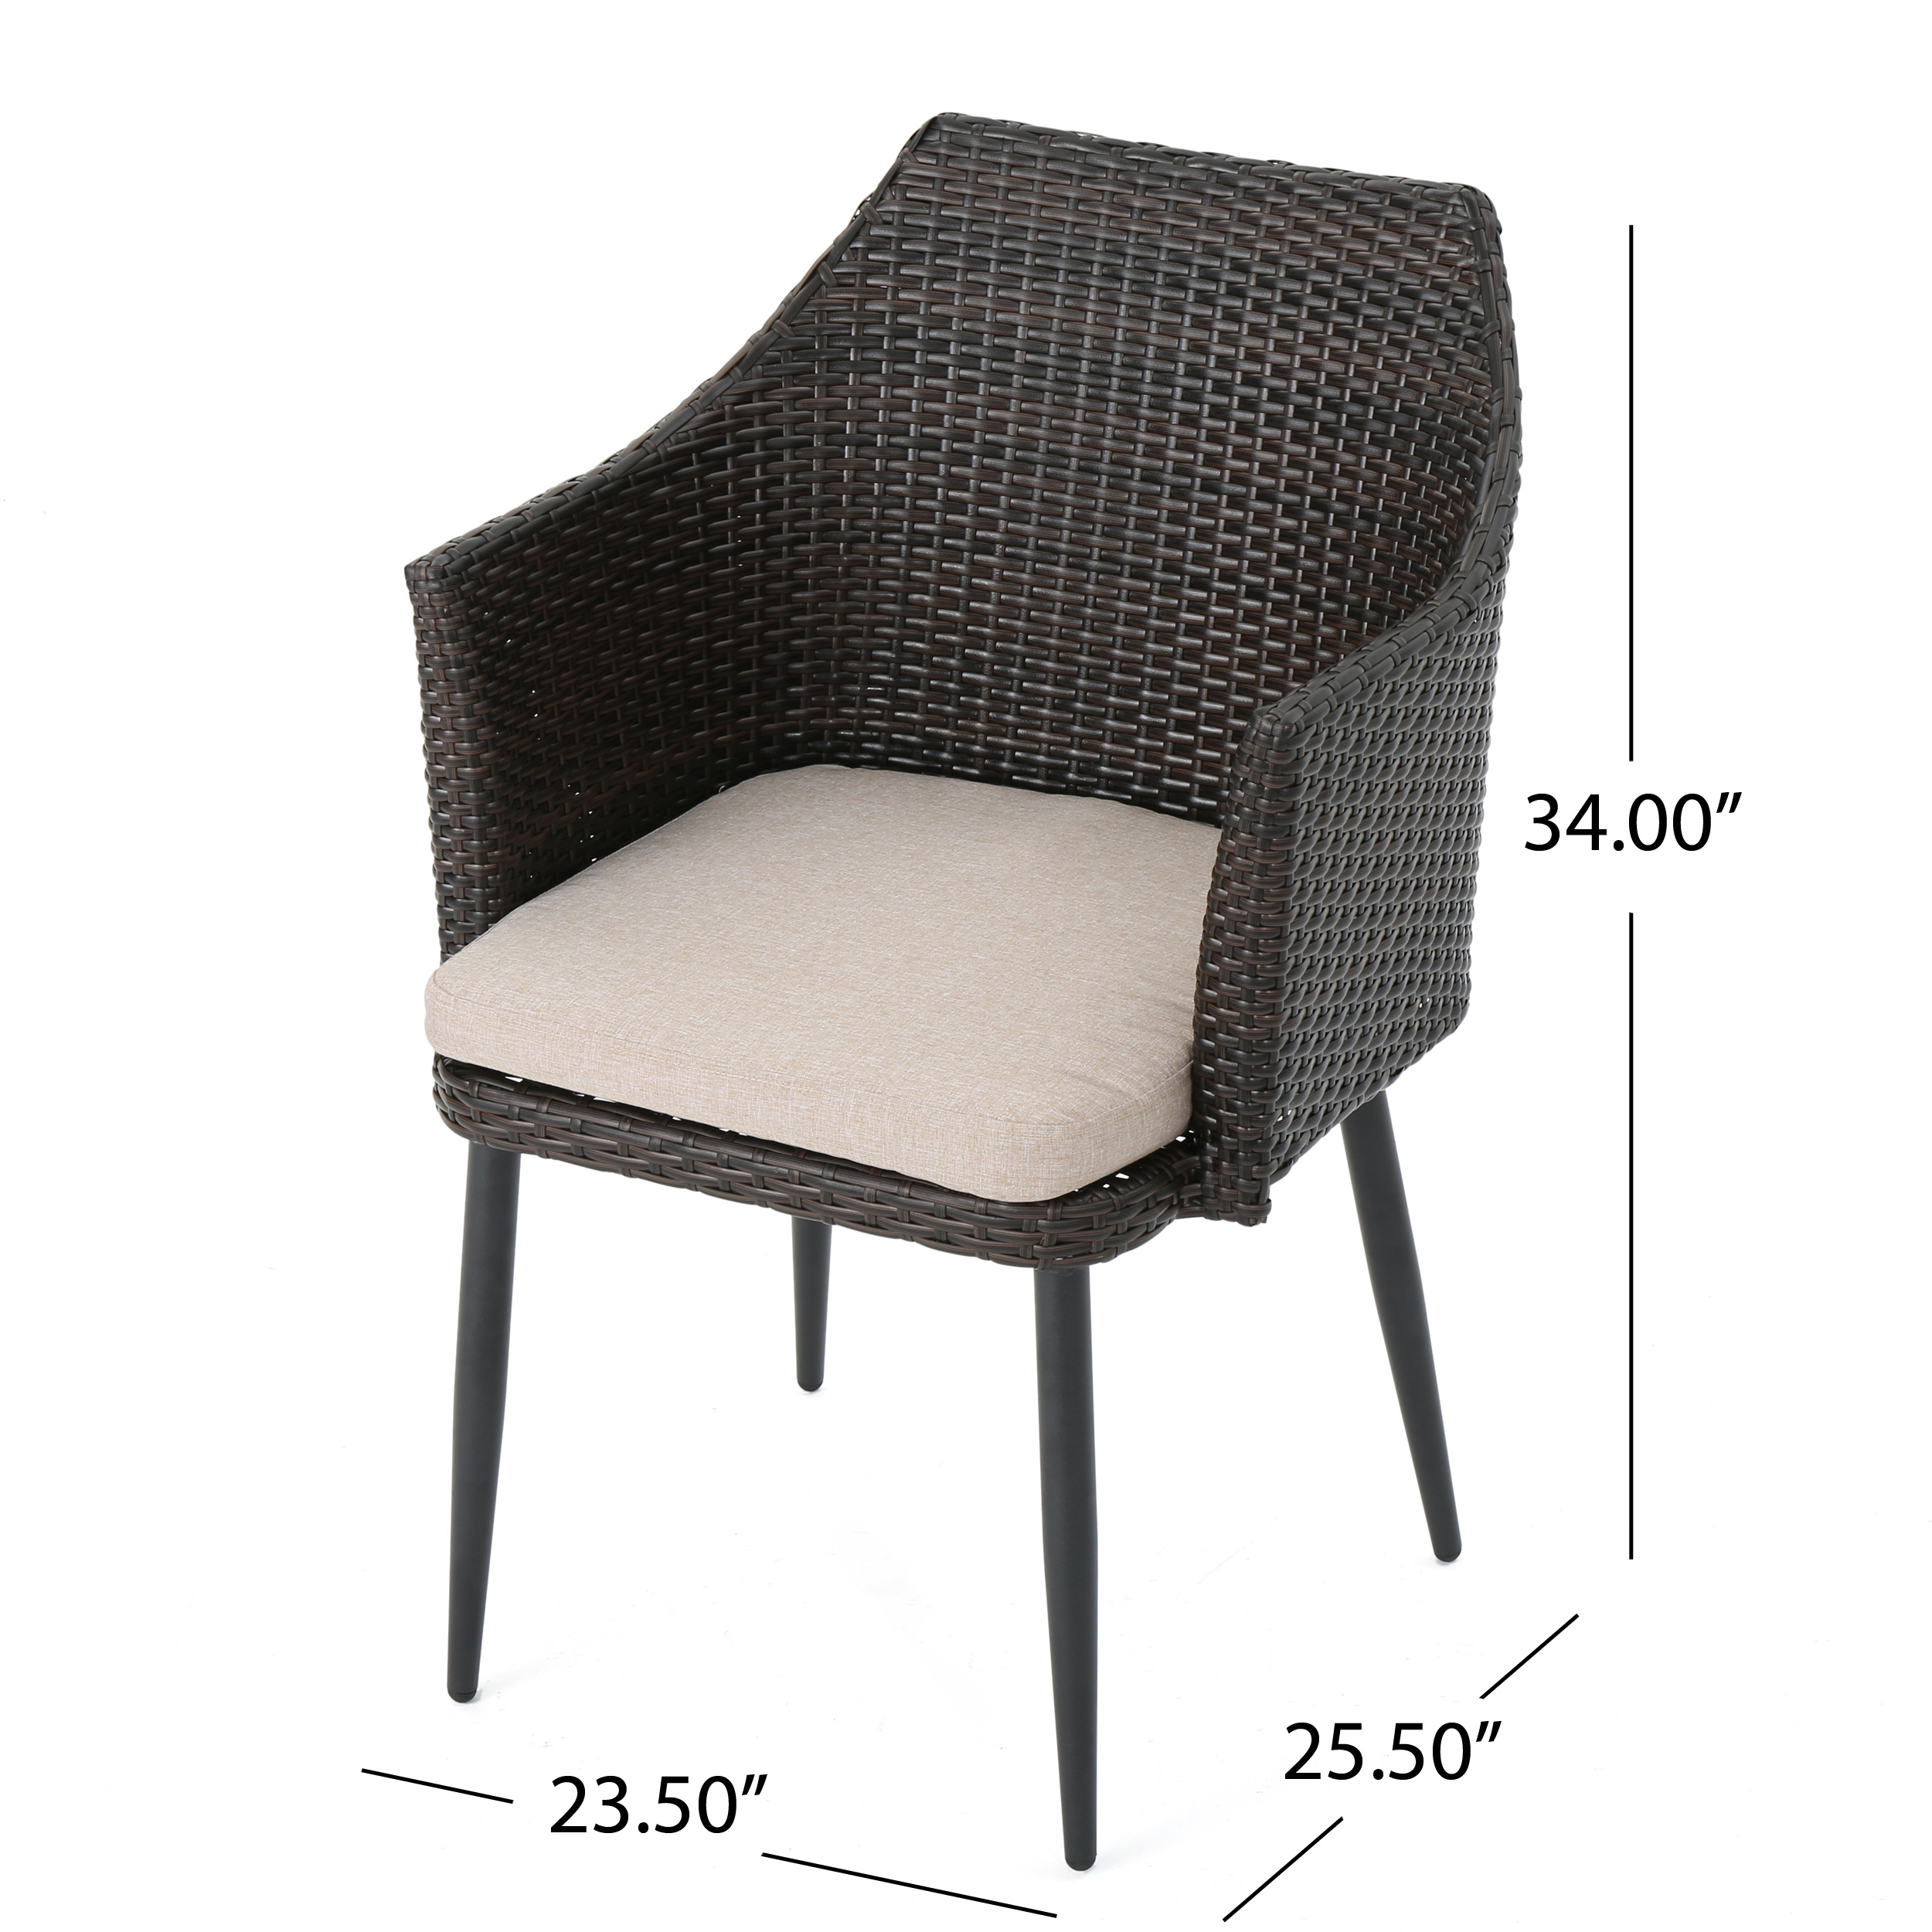 Ibiza-Outdoor-Wicker-Dining-Chairs-with-Water-Resistant-Cushion-Set-of-2 thumbnail 11